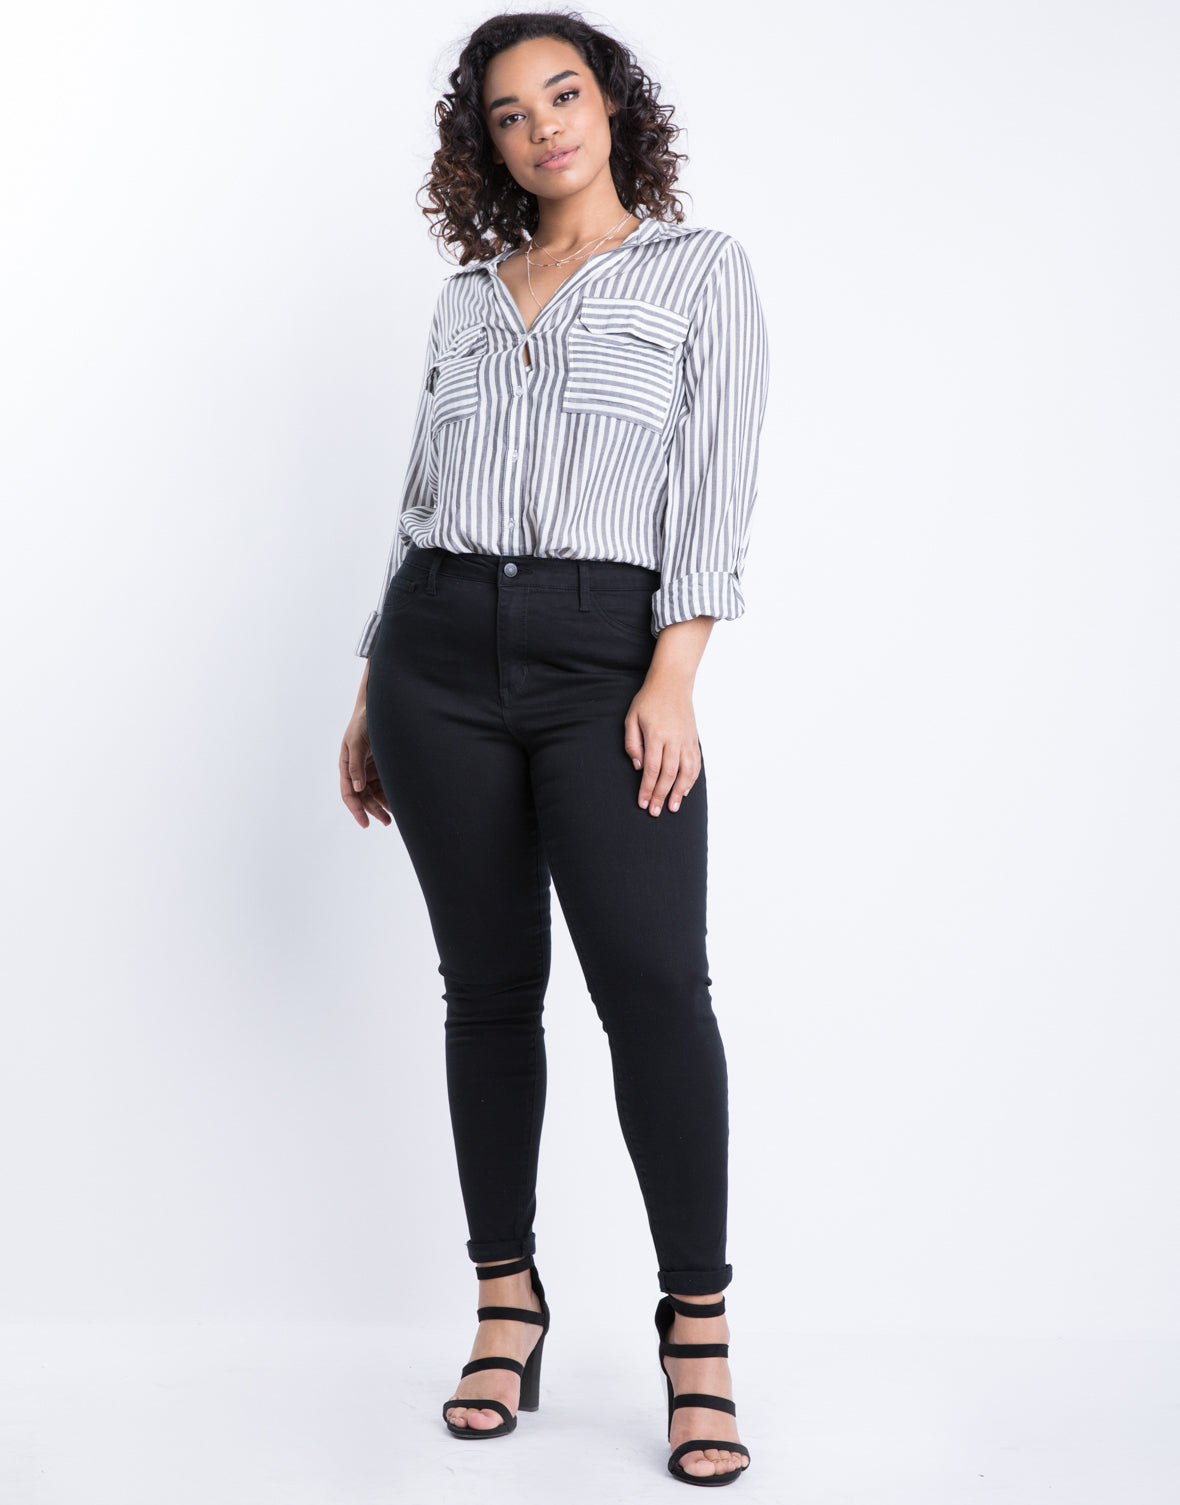 Plus Size Day to Day Jeans